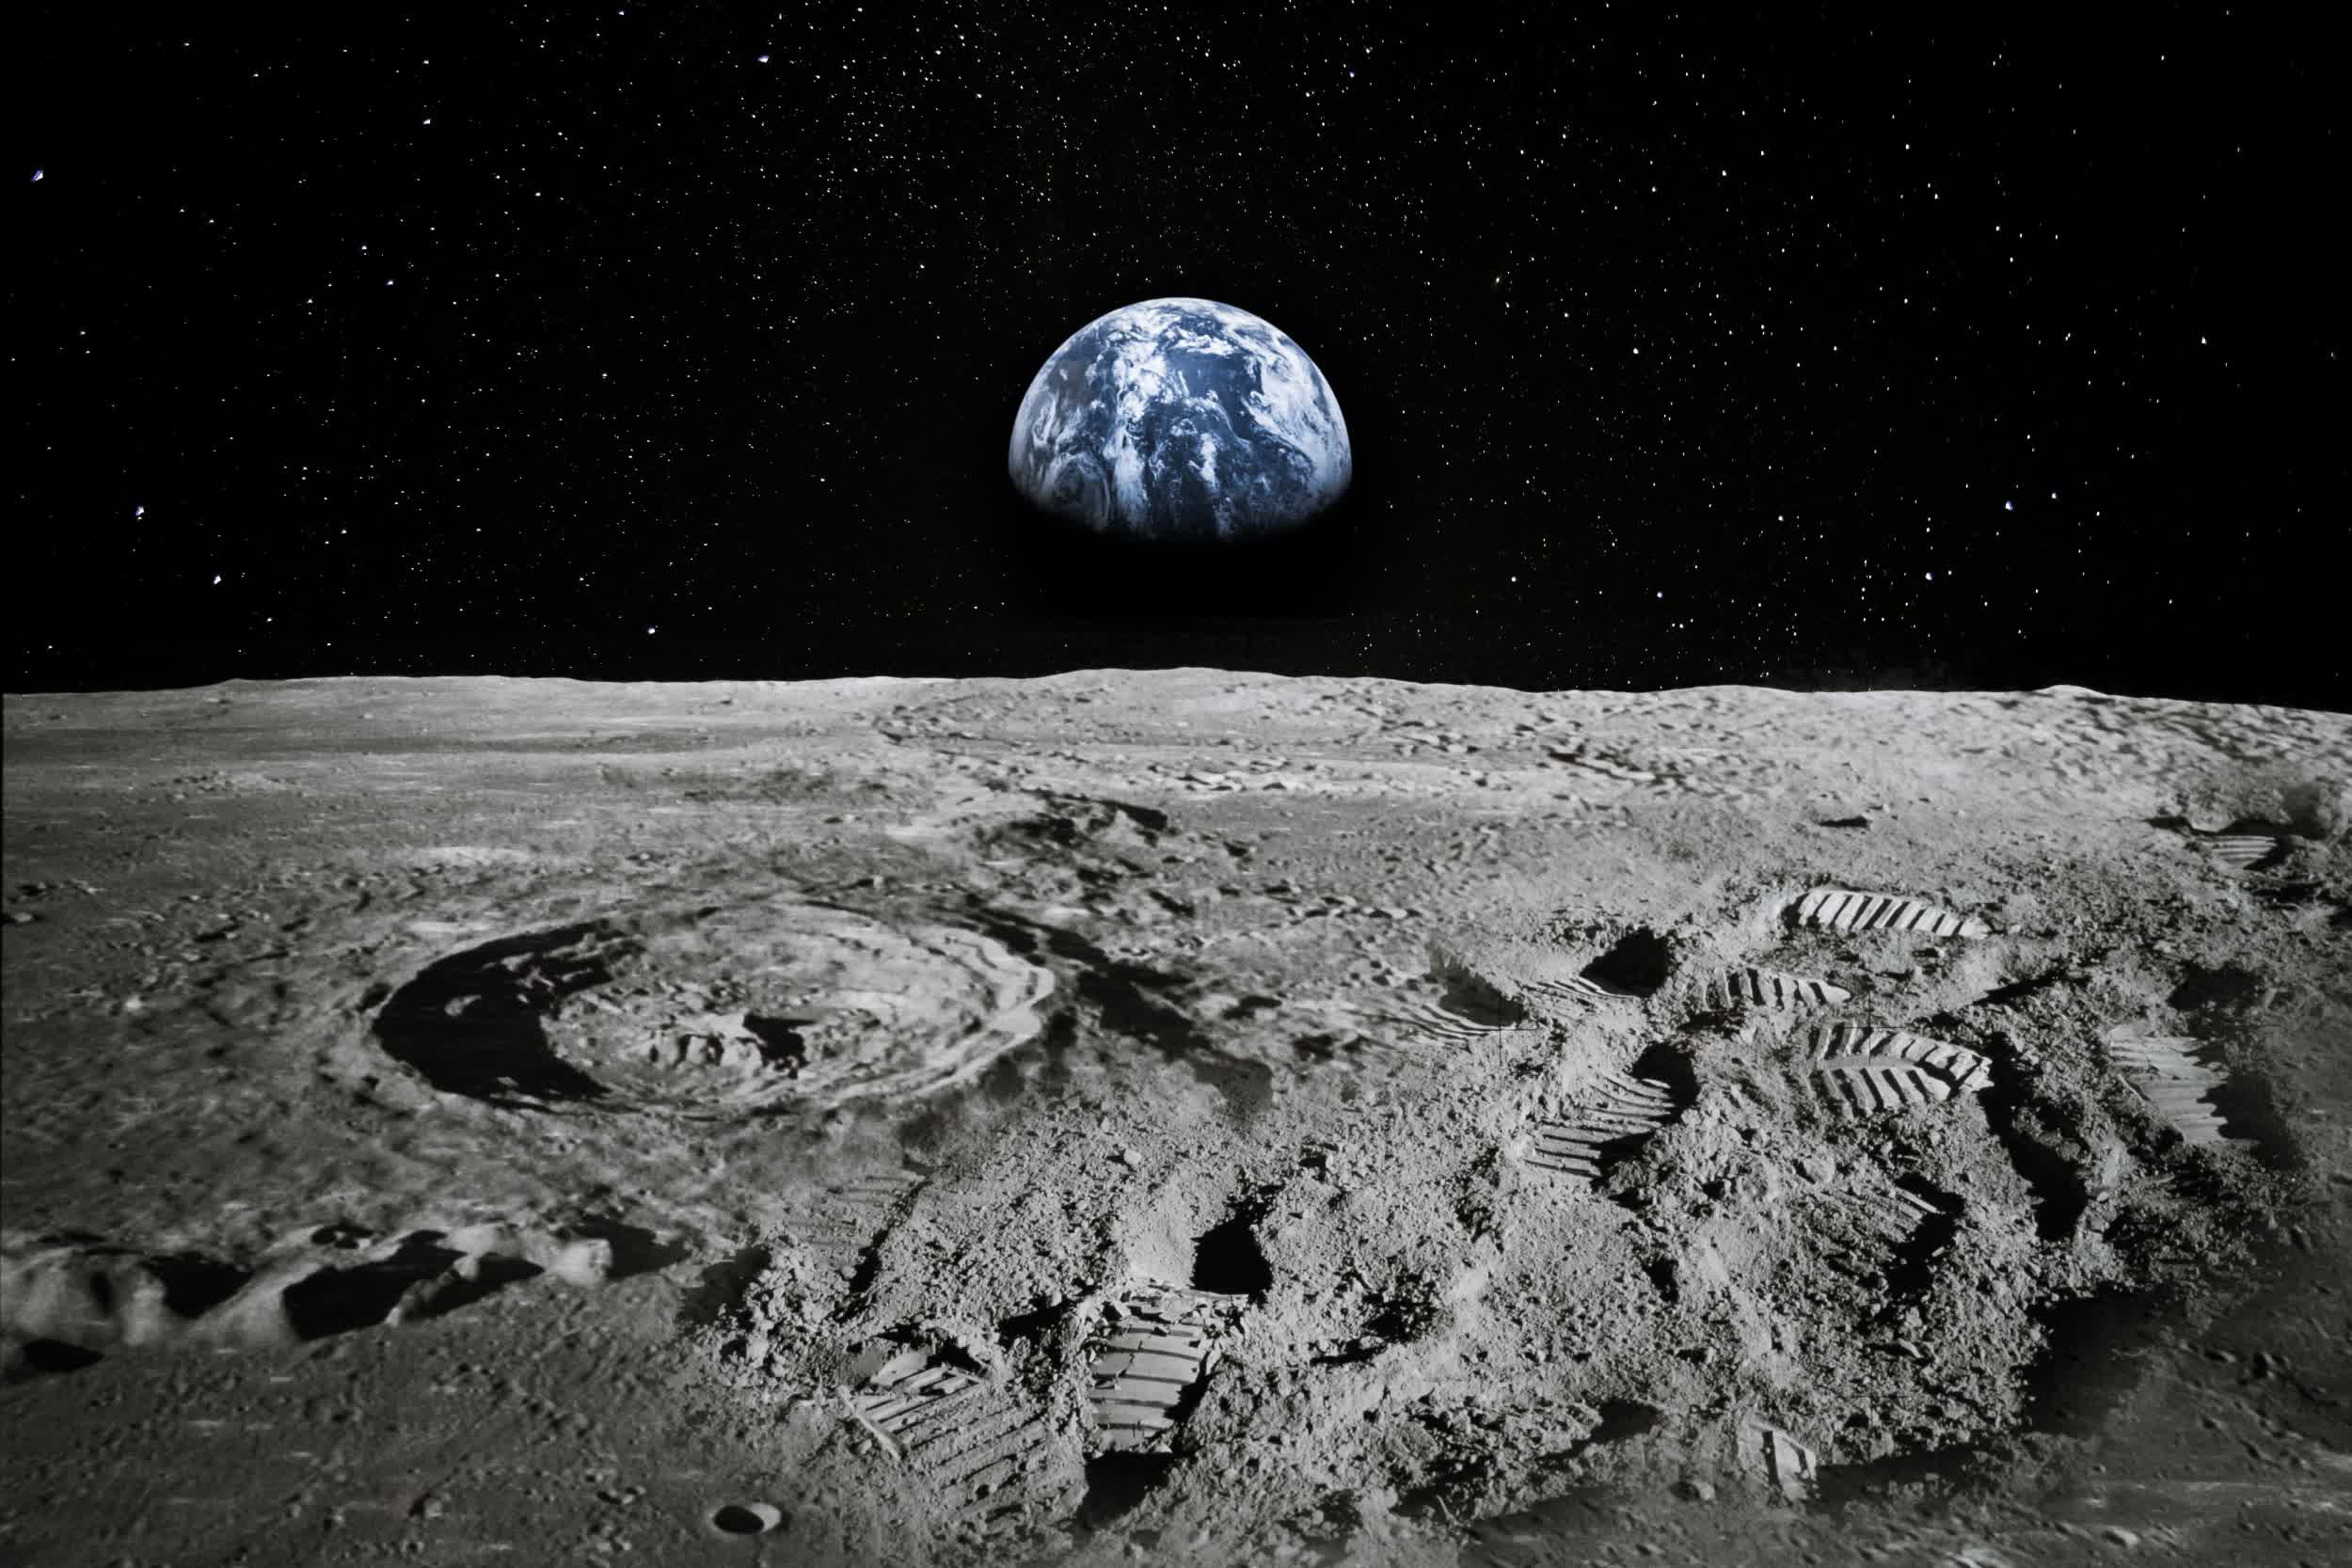 NASA has found water on a sunlit area of the Moon